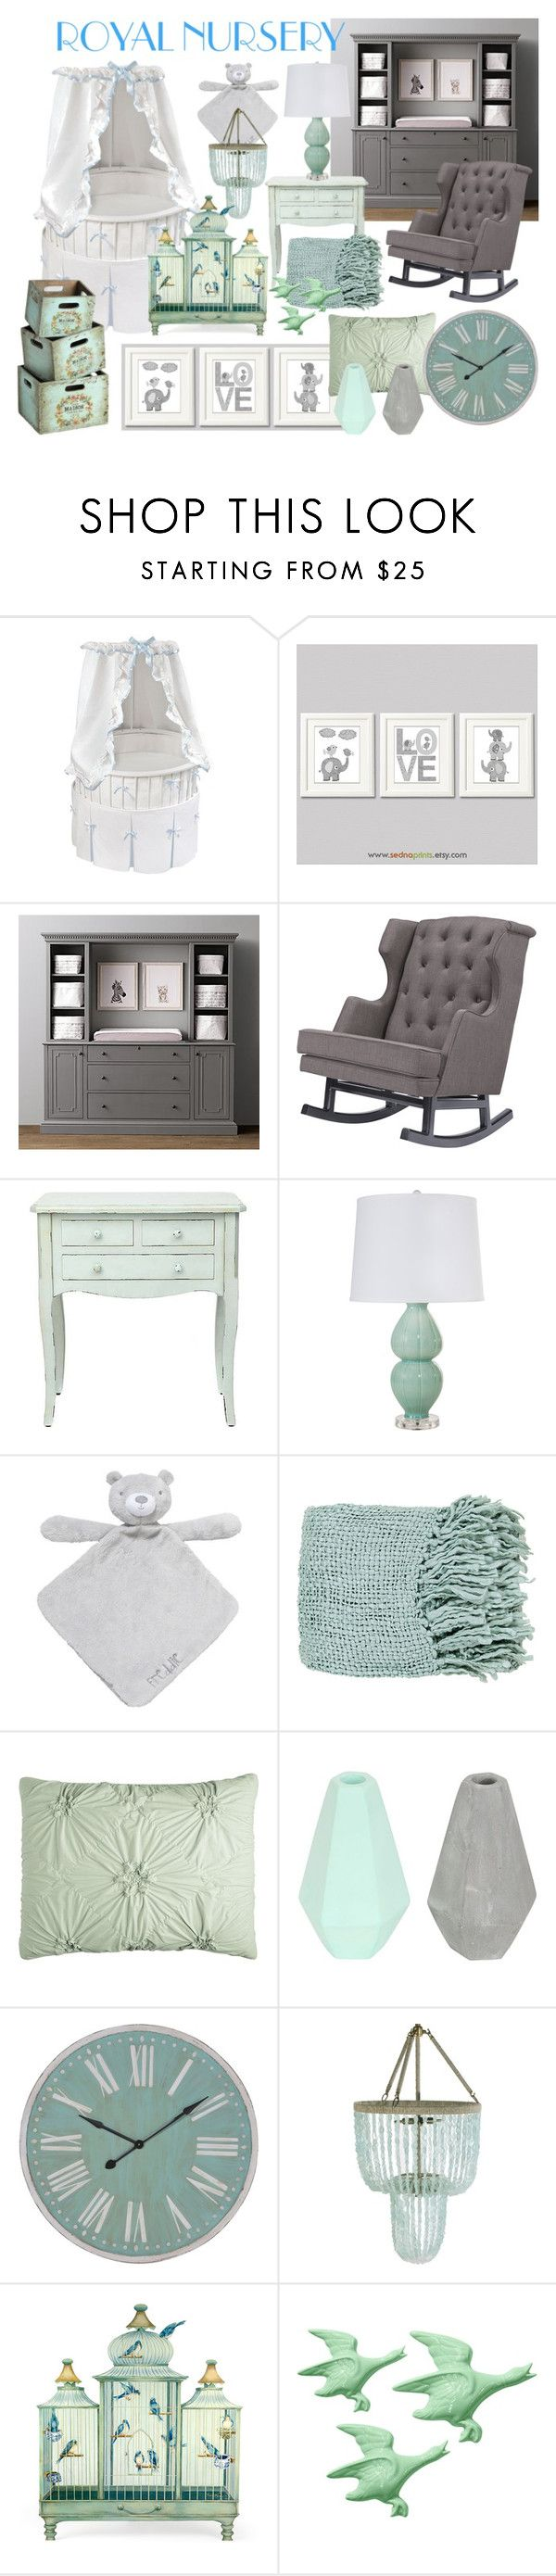 Royal Nursery - Dreams by stylebycharlene on Polyvore featuring interior, interiors, interior design, home, home decor, interior decorating, Nursery Works, Worlds Away, Ro Sham Beaux and Pier 1 Imports